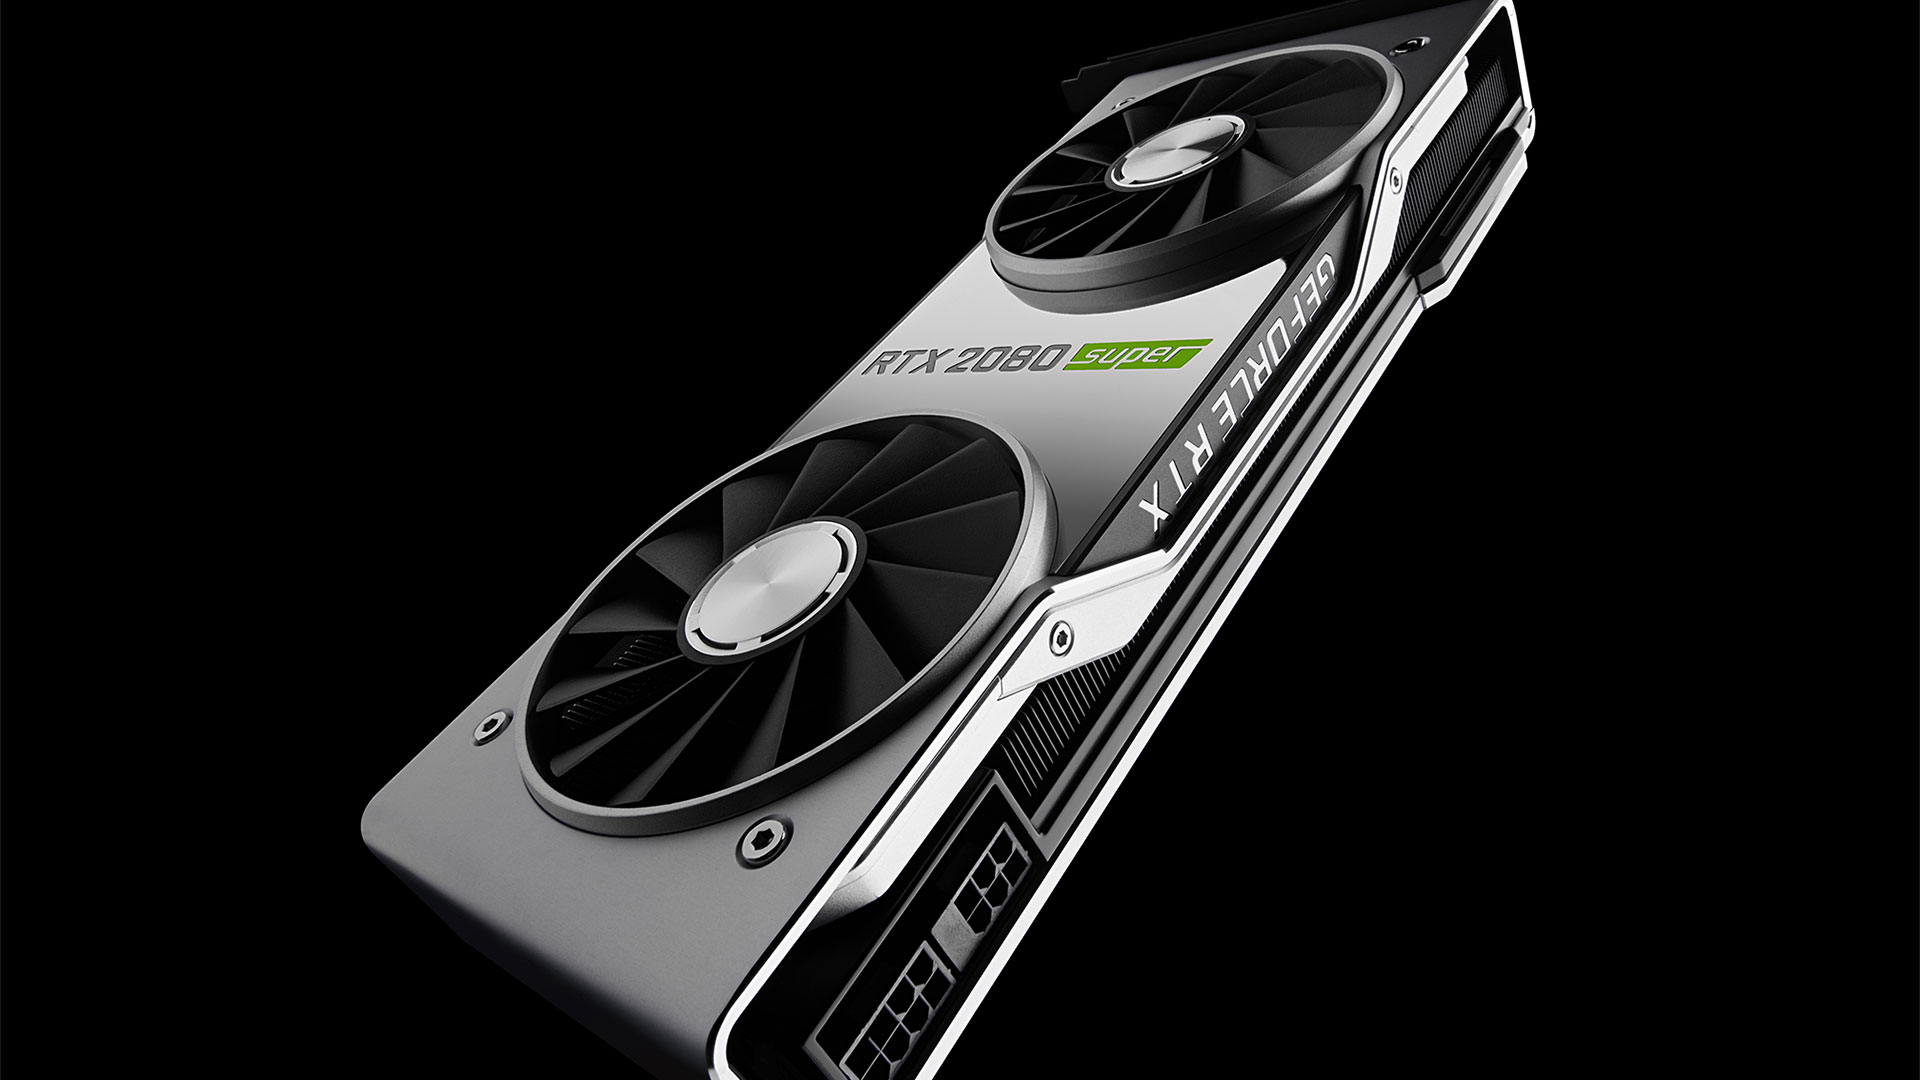 Nvidia RTX 2080 Super Founder's Edition review - Not quite Super